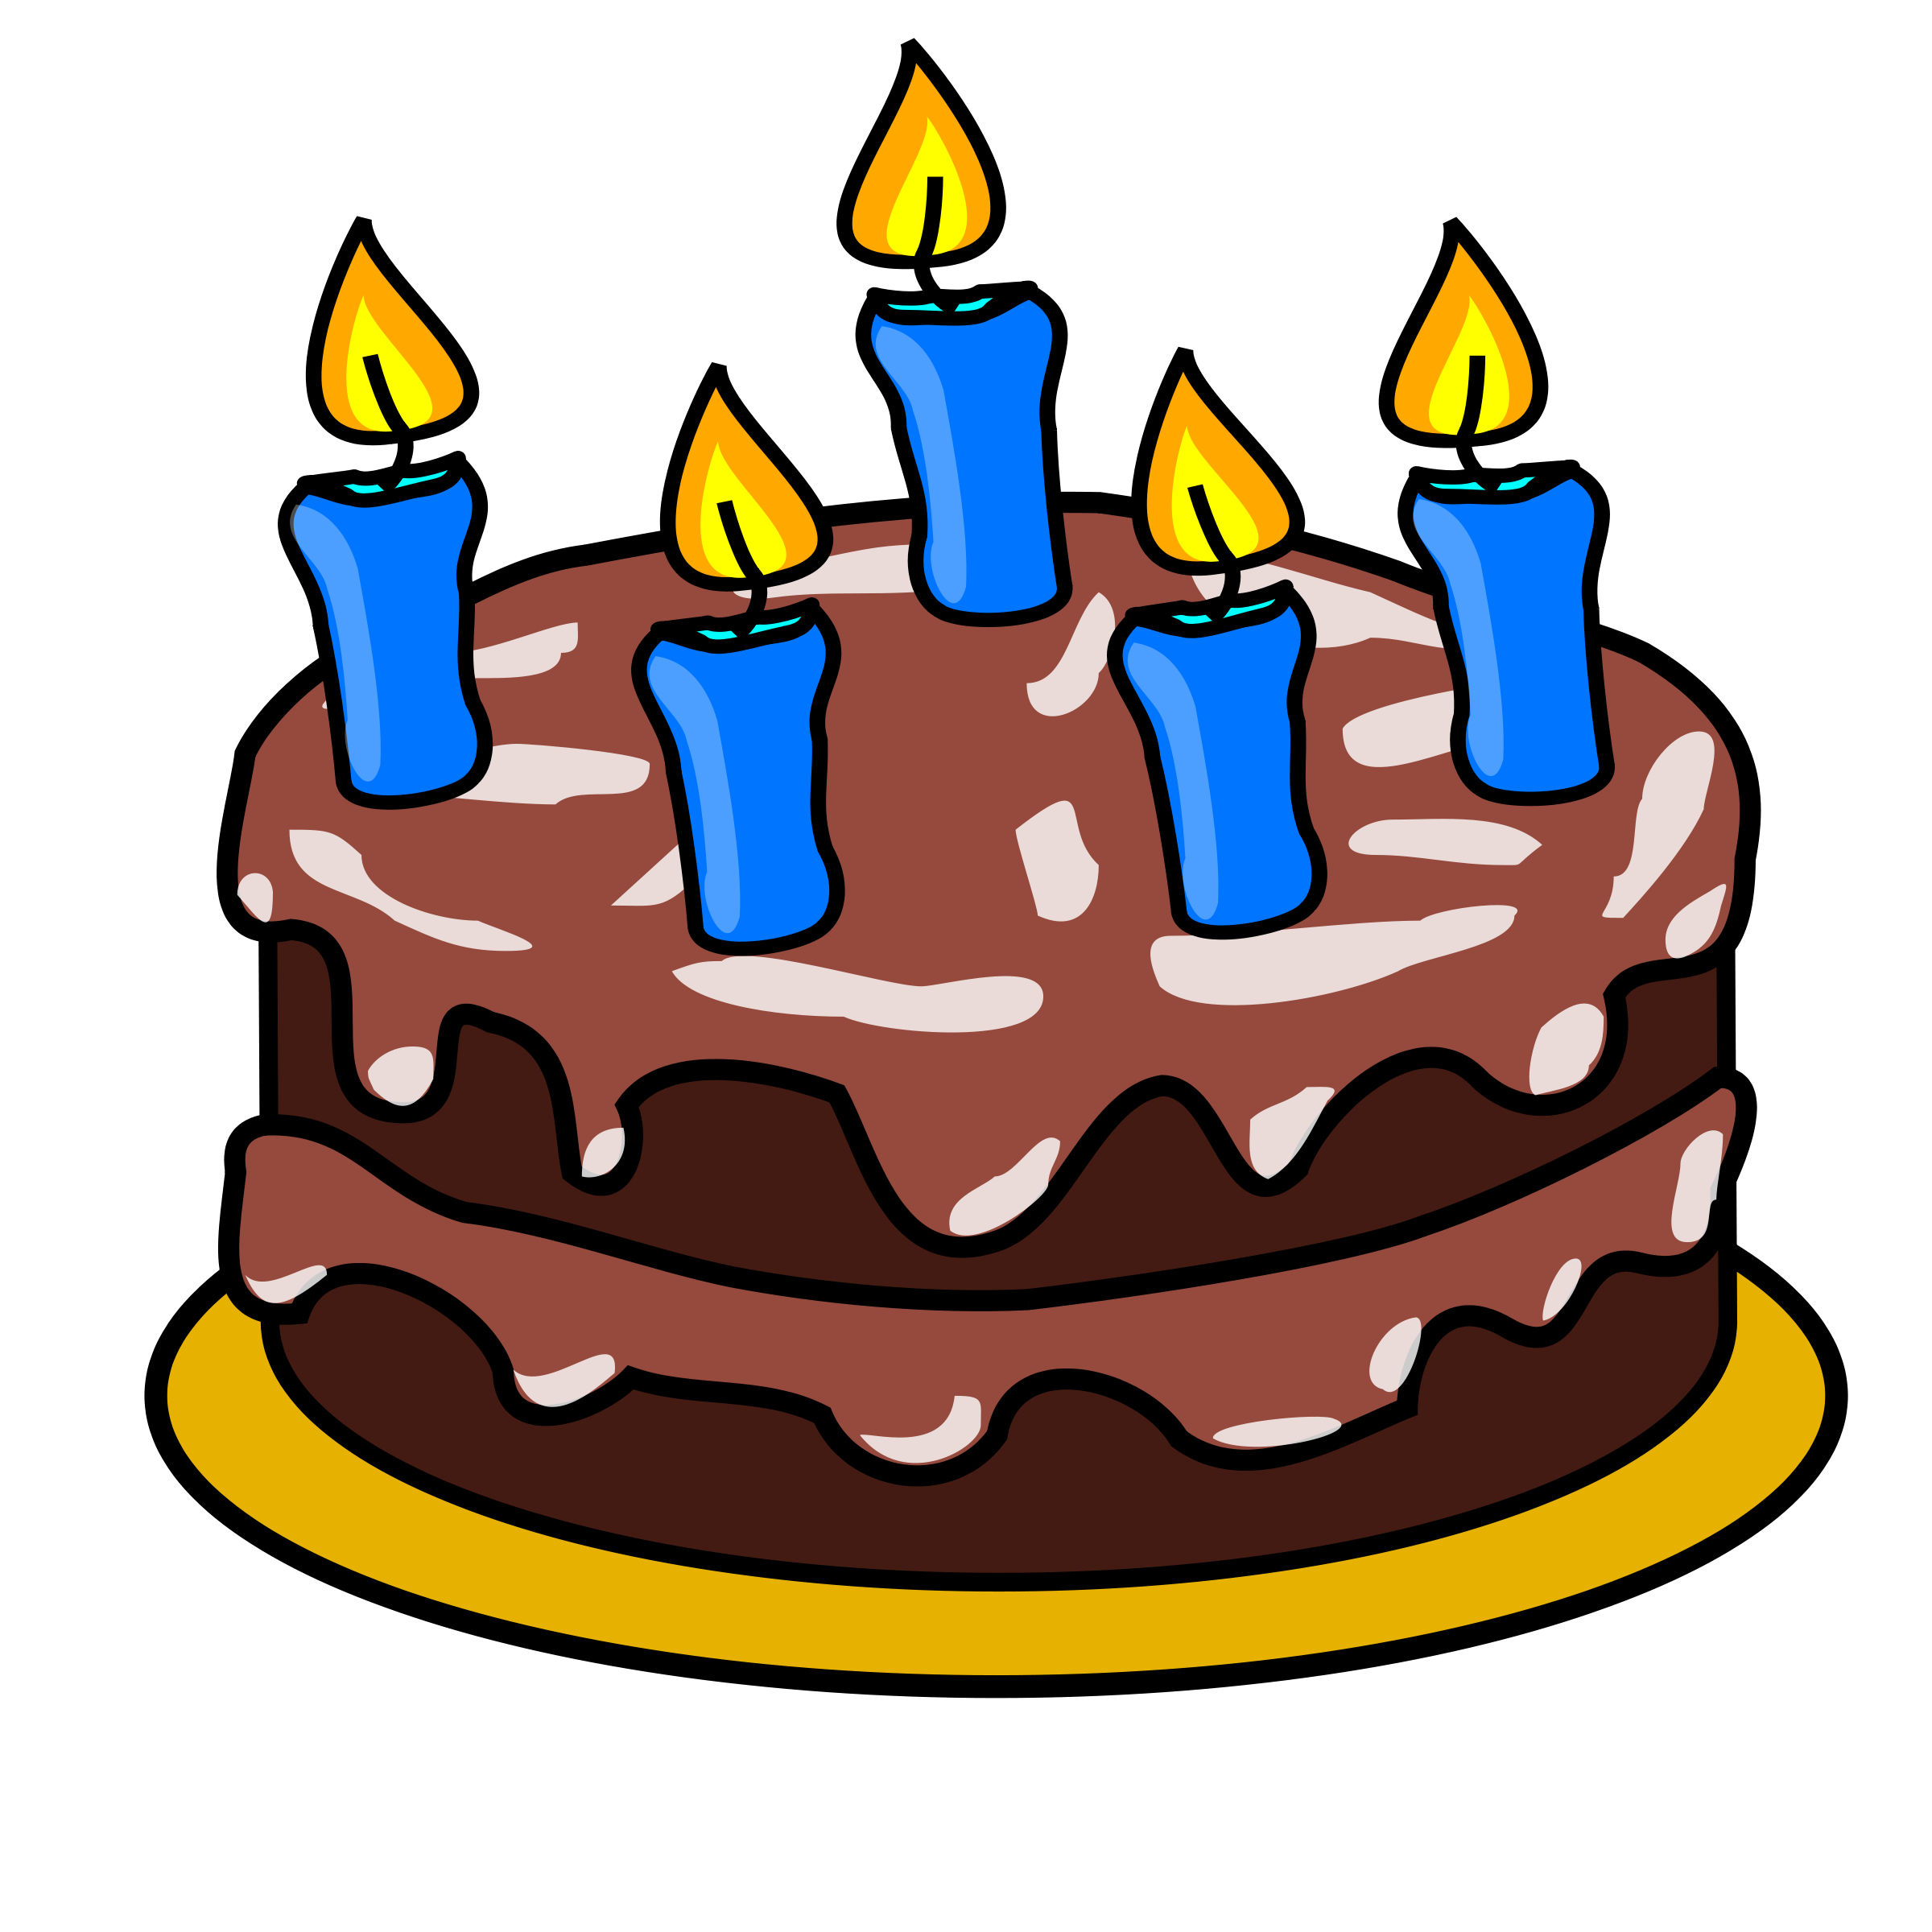 Cake clipart #12, Download drawings